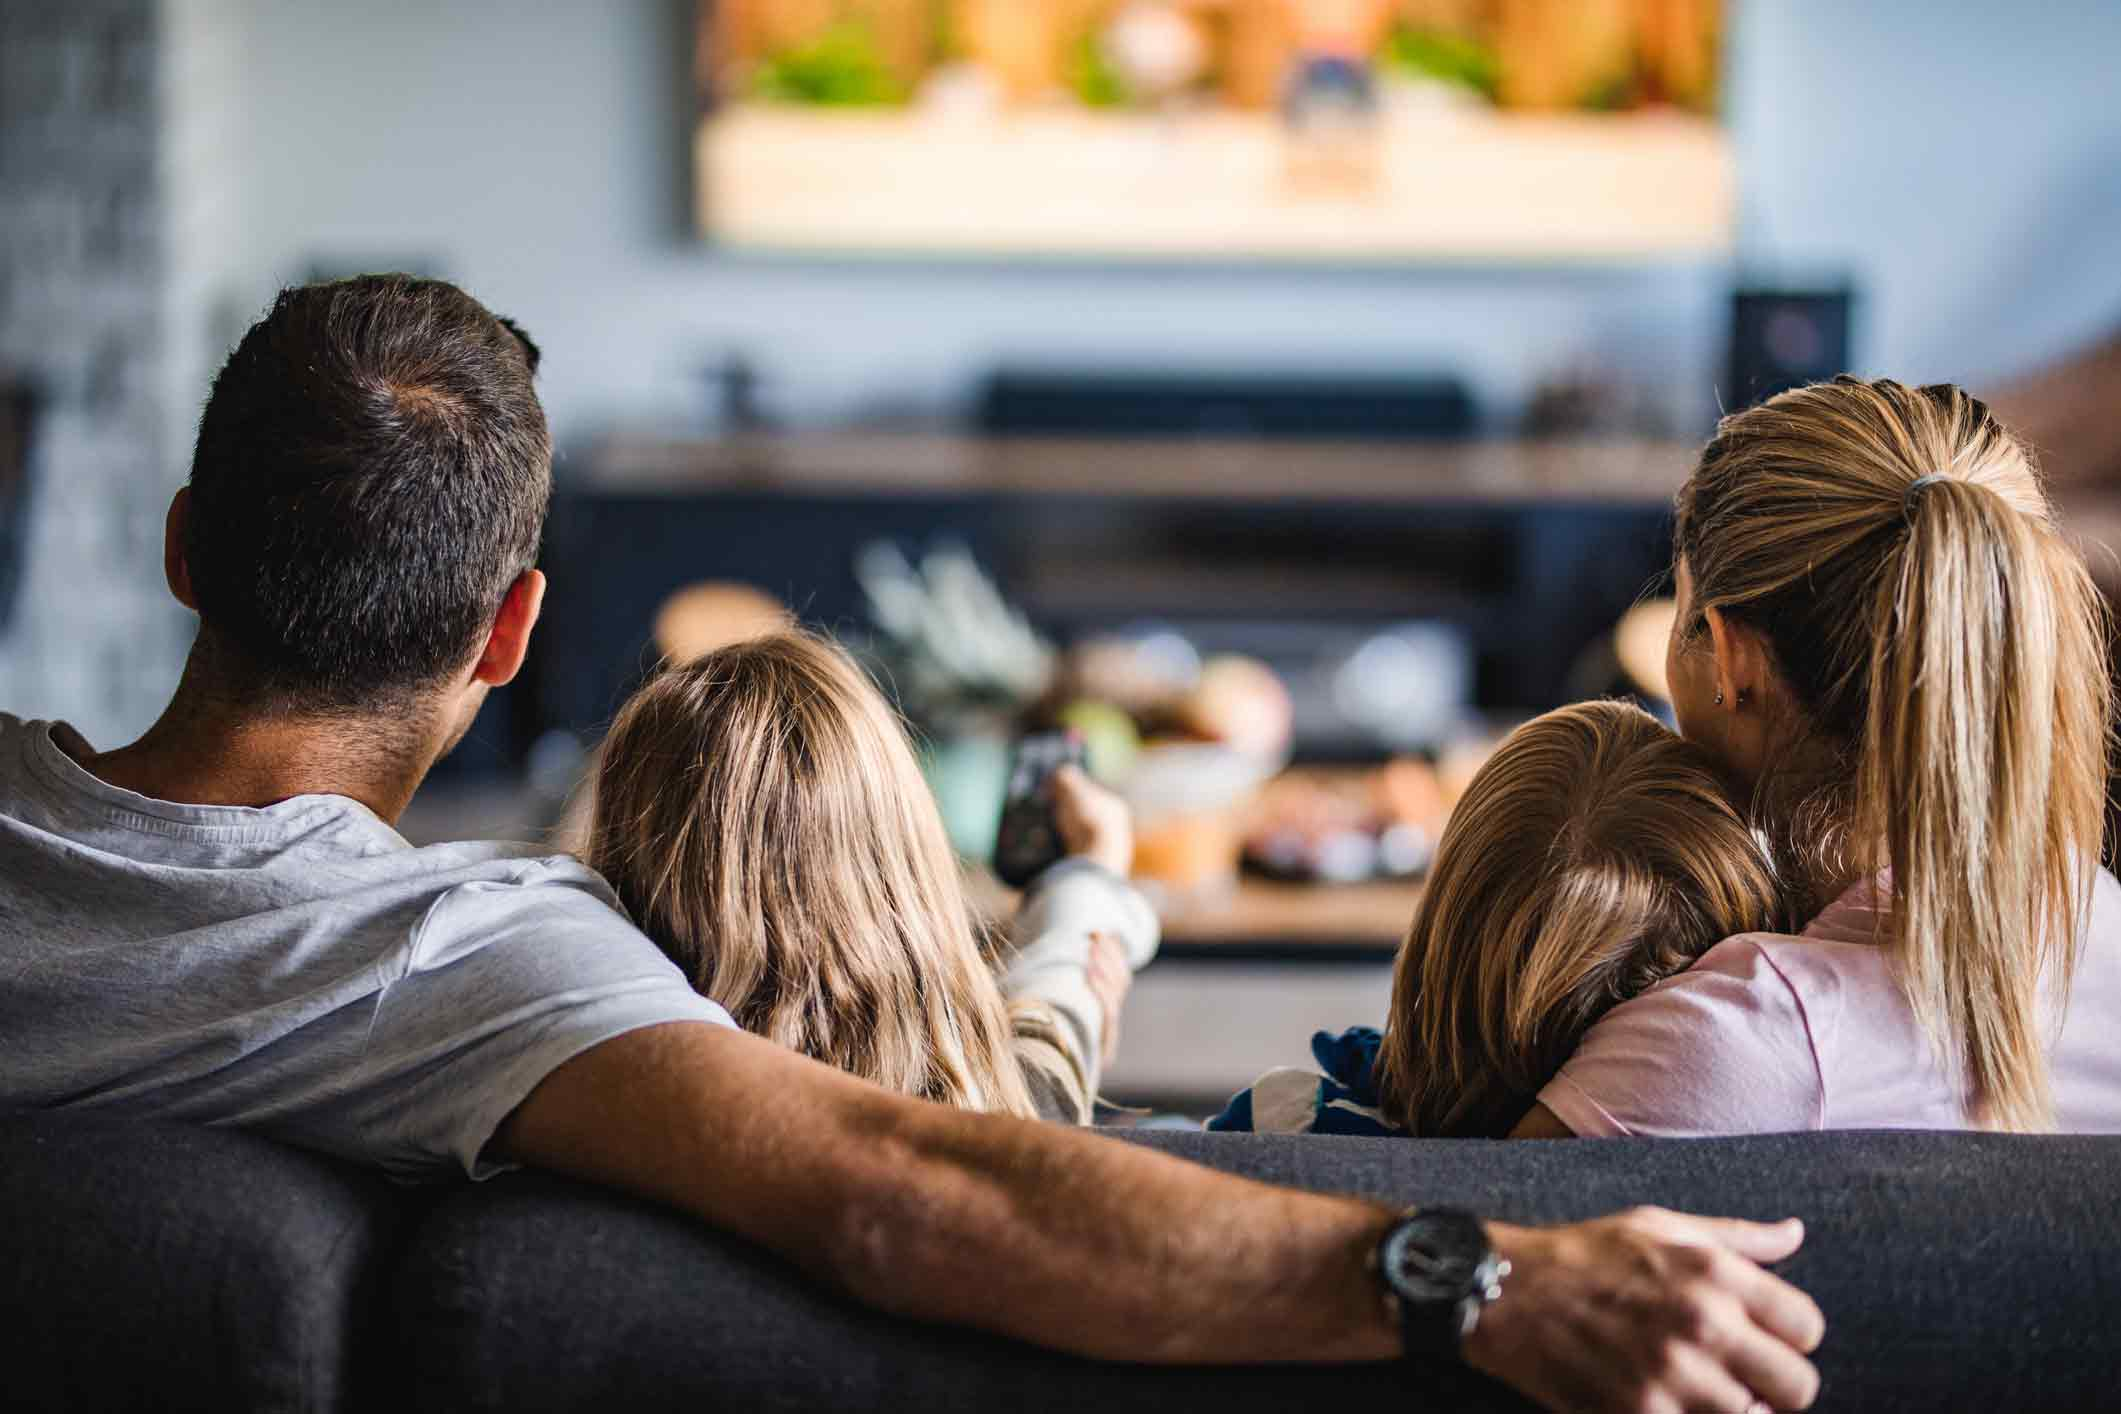 Streaming Services Offer Longer Free Trials During the Coronavirus Pandemic